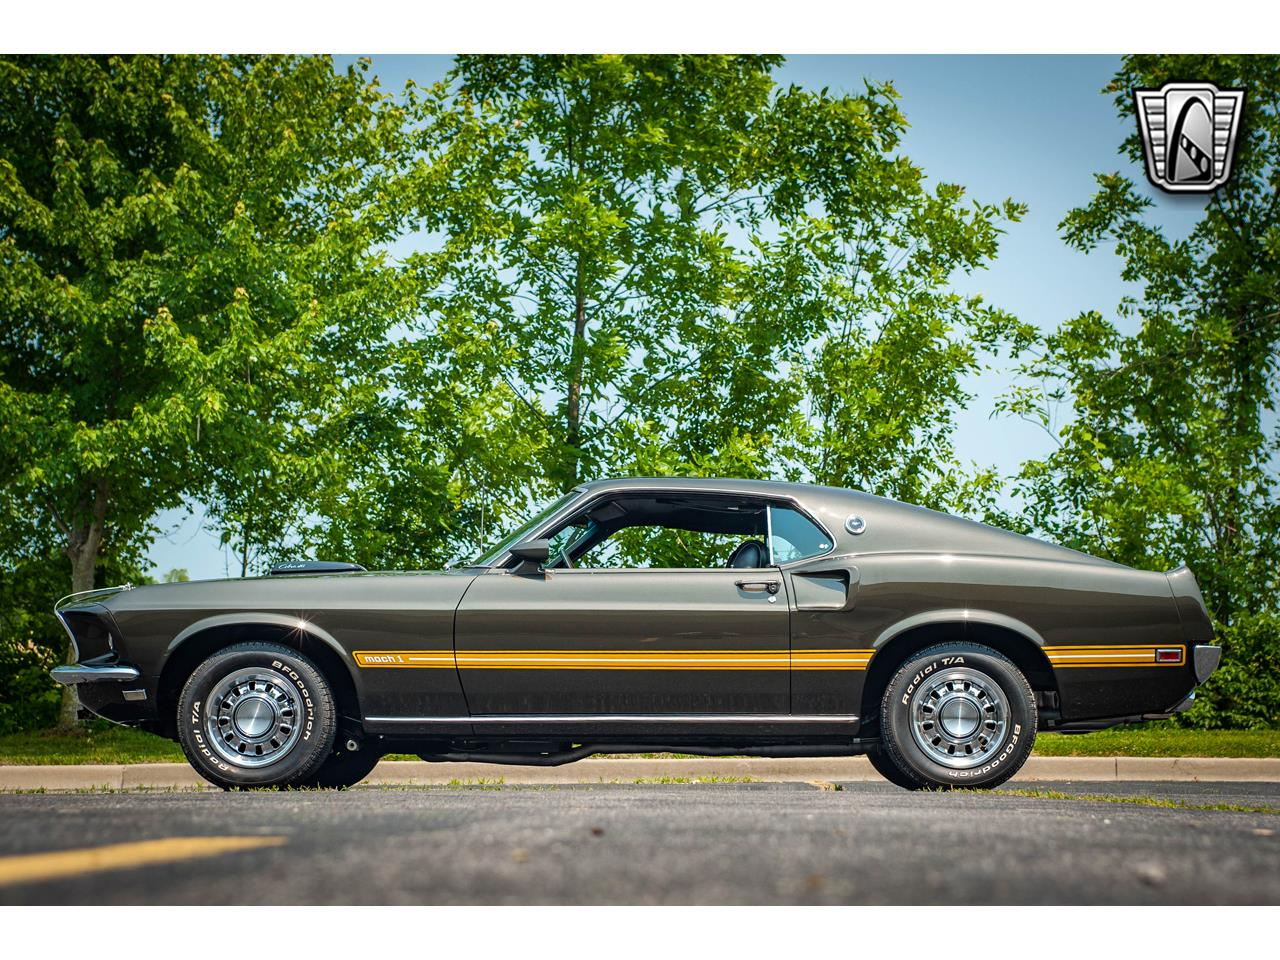 Large Picture of '69 Mustang located in O'Fallon Illinois - $97,500.00 - QBA2